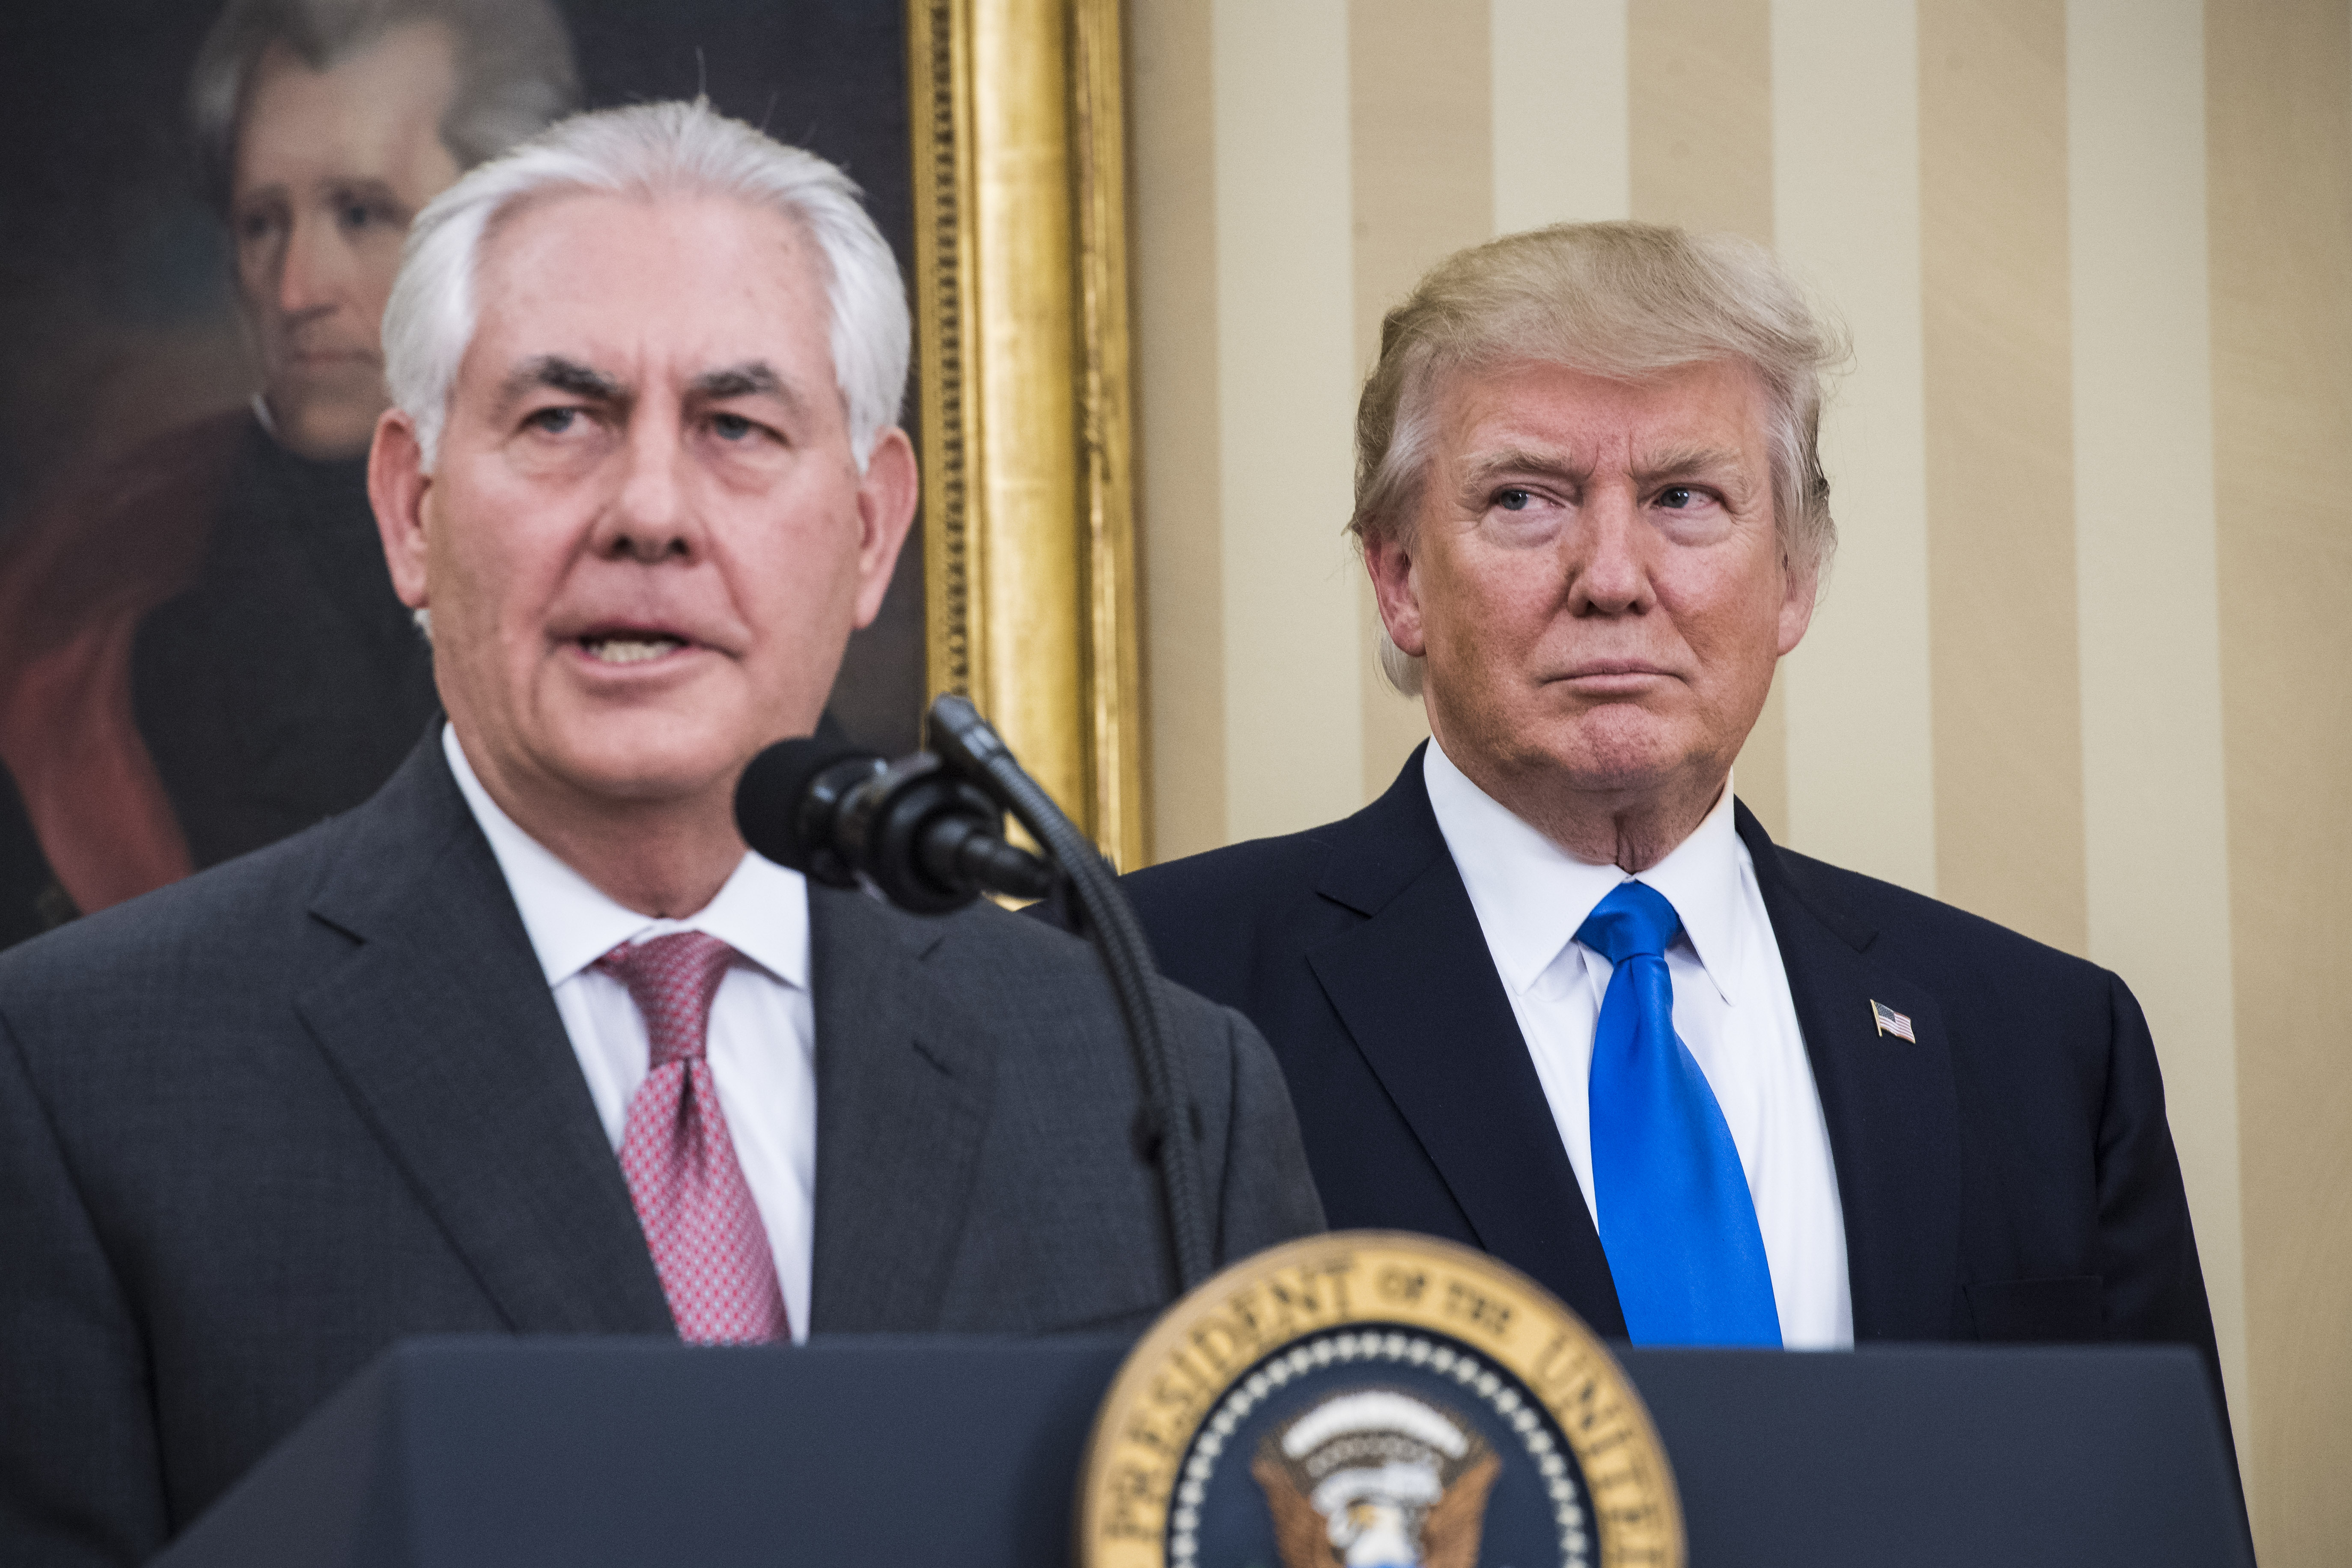 Trump: If Tillerson called me a moron, 'We'll have to compare IQ tests'